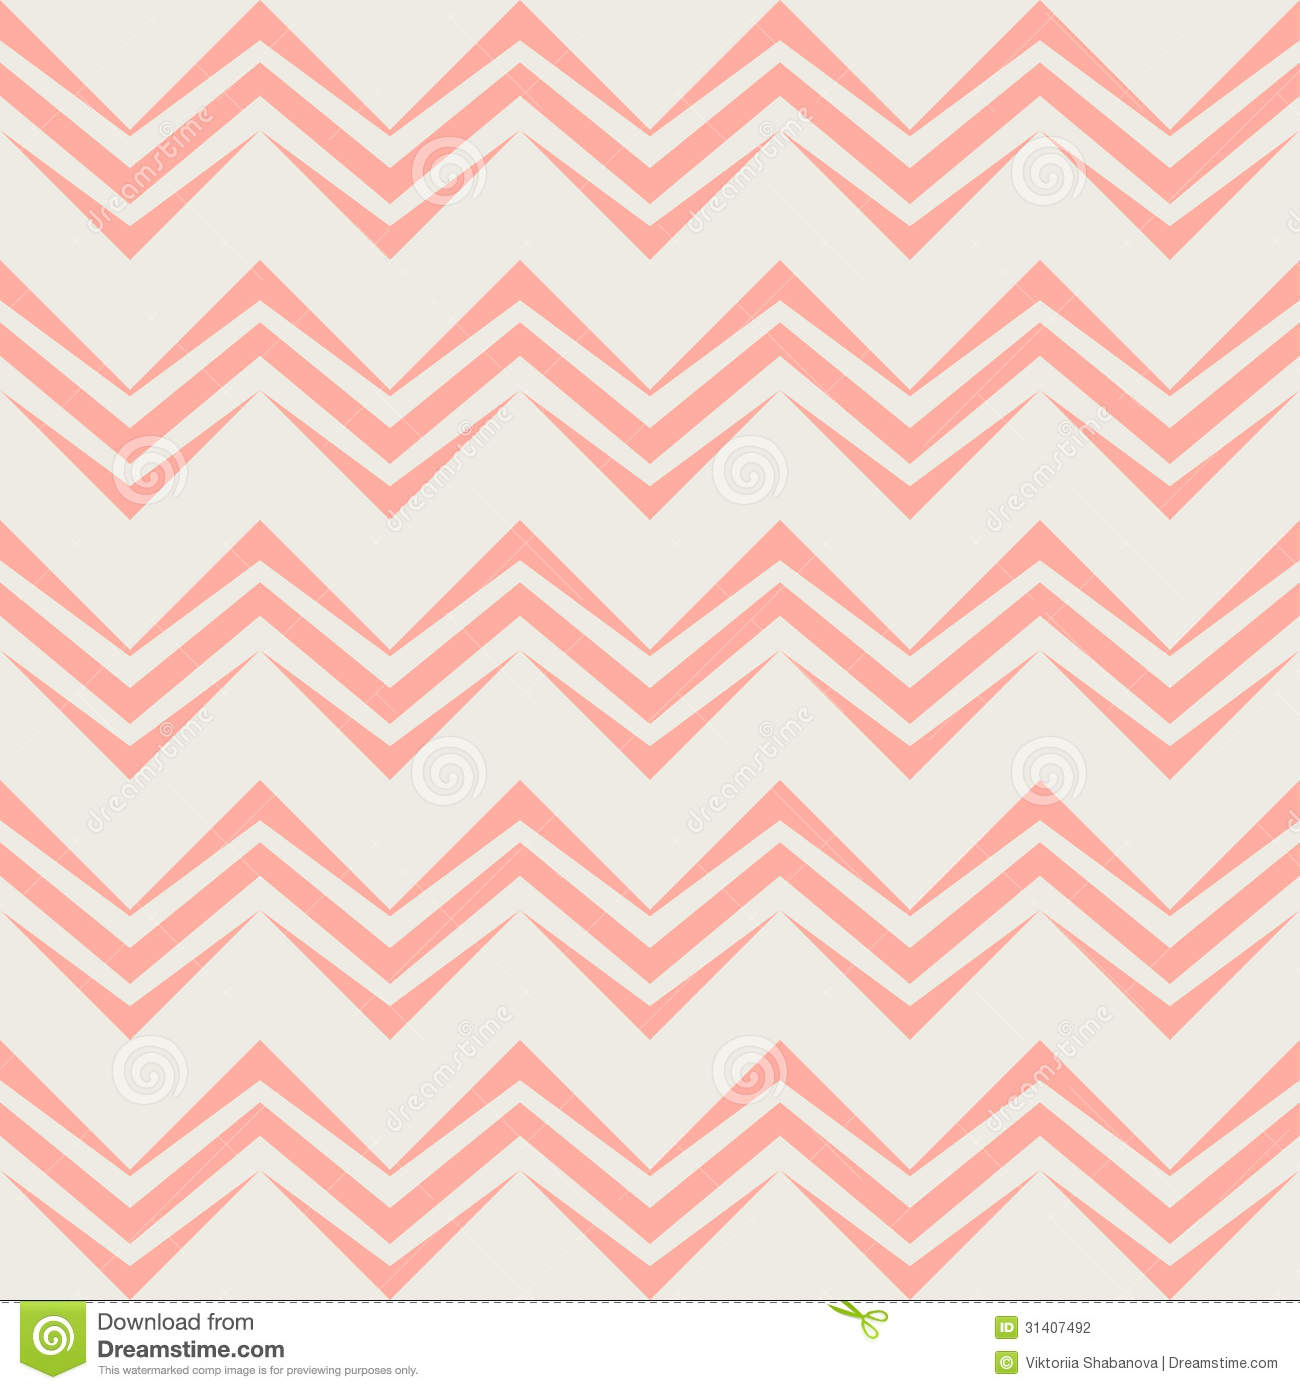 chevron style wallpaper - photo #3